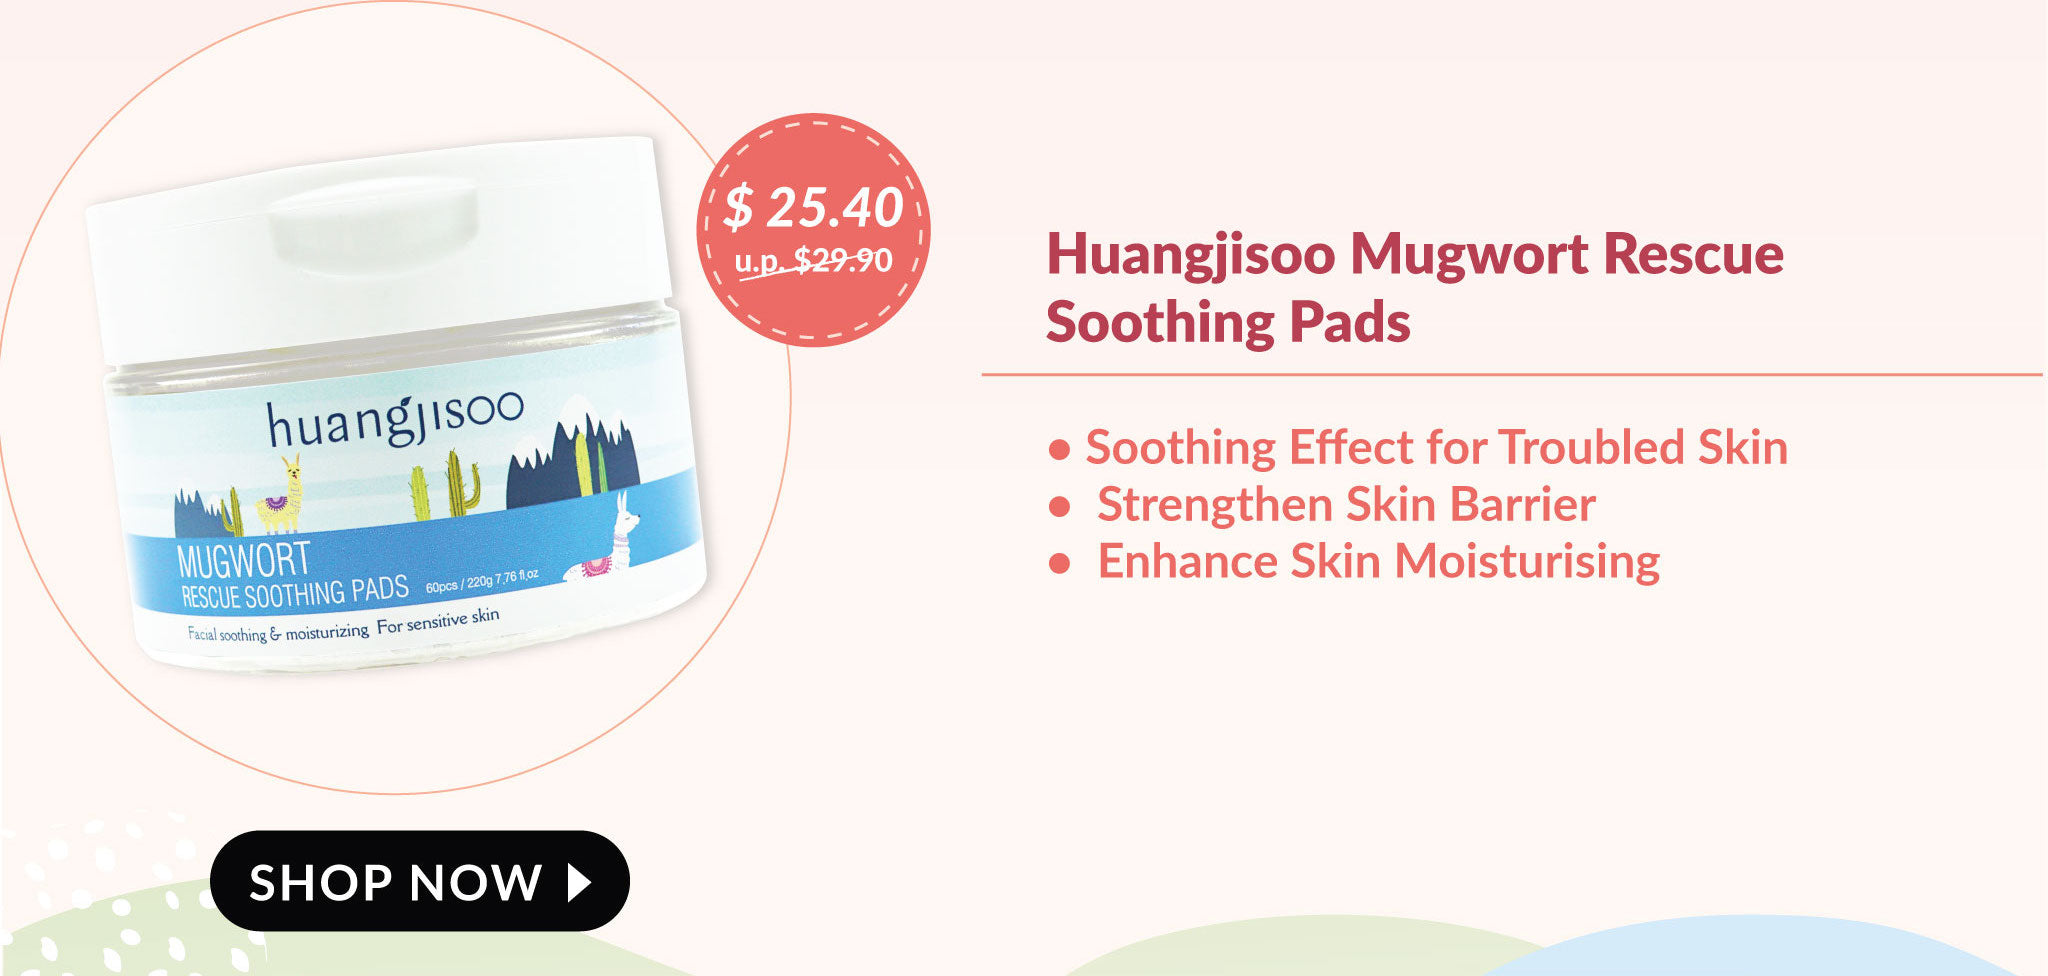 Huangjisoo Mugwort Rescue Soothing Pads